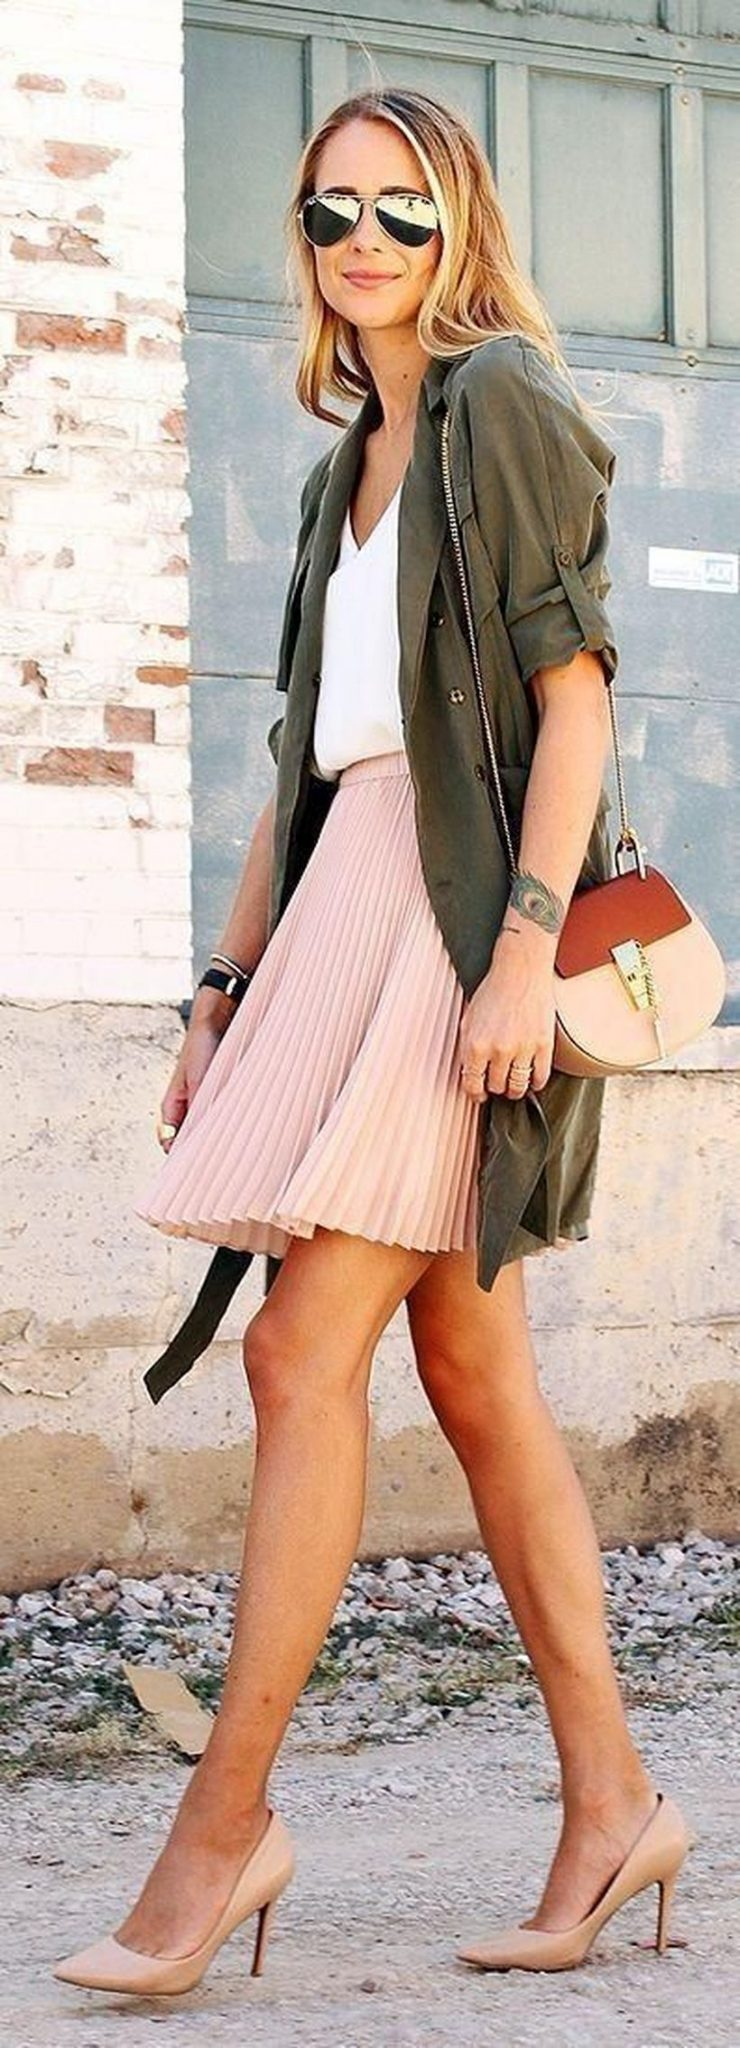 Cool tshirt and skirt for everyday outfits 16